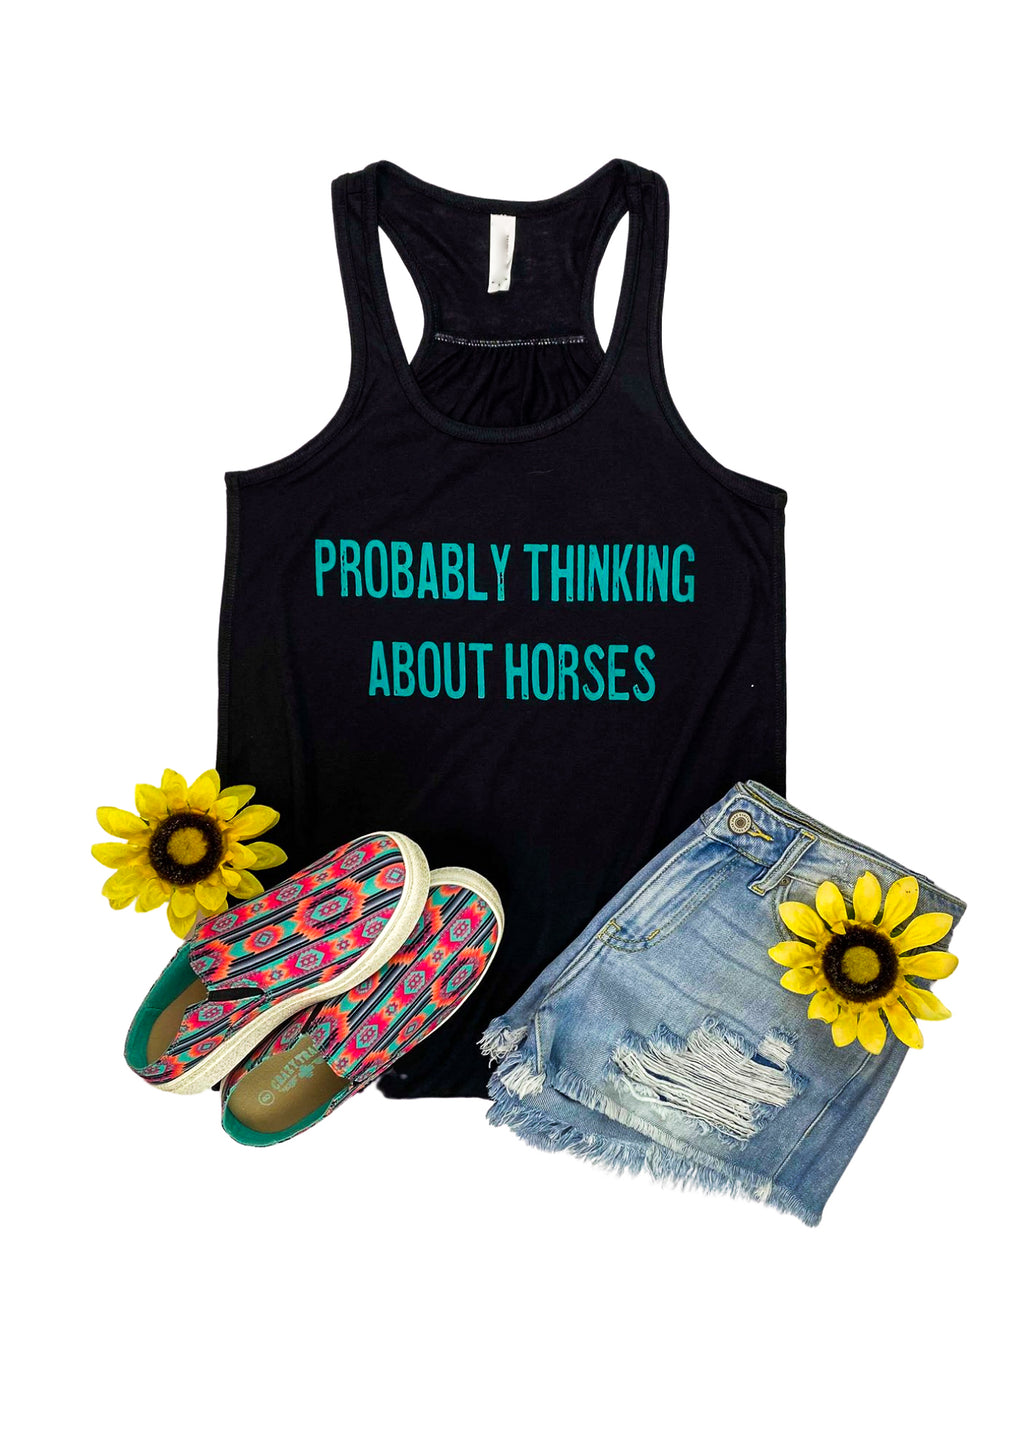 Solid Black tank with Probably Thinking About Horses lettering in Teal ink in the center